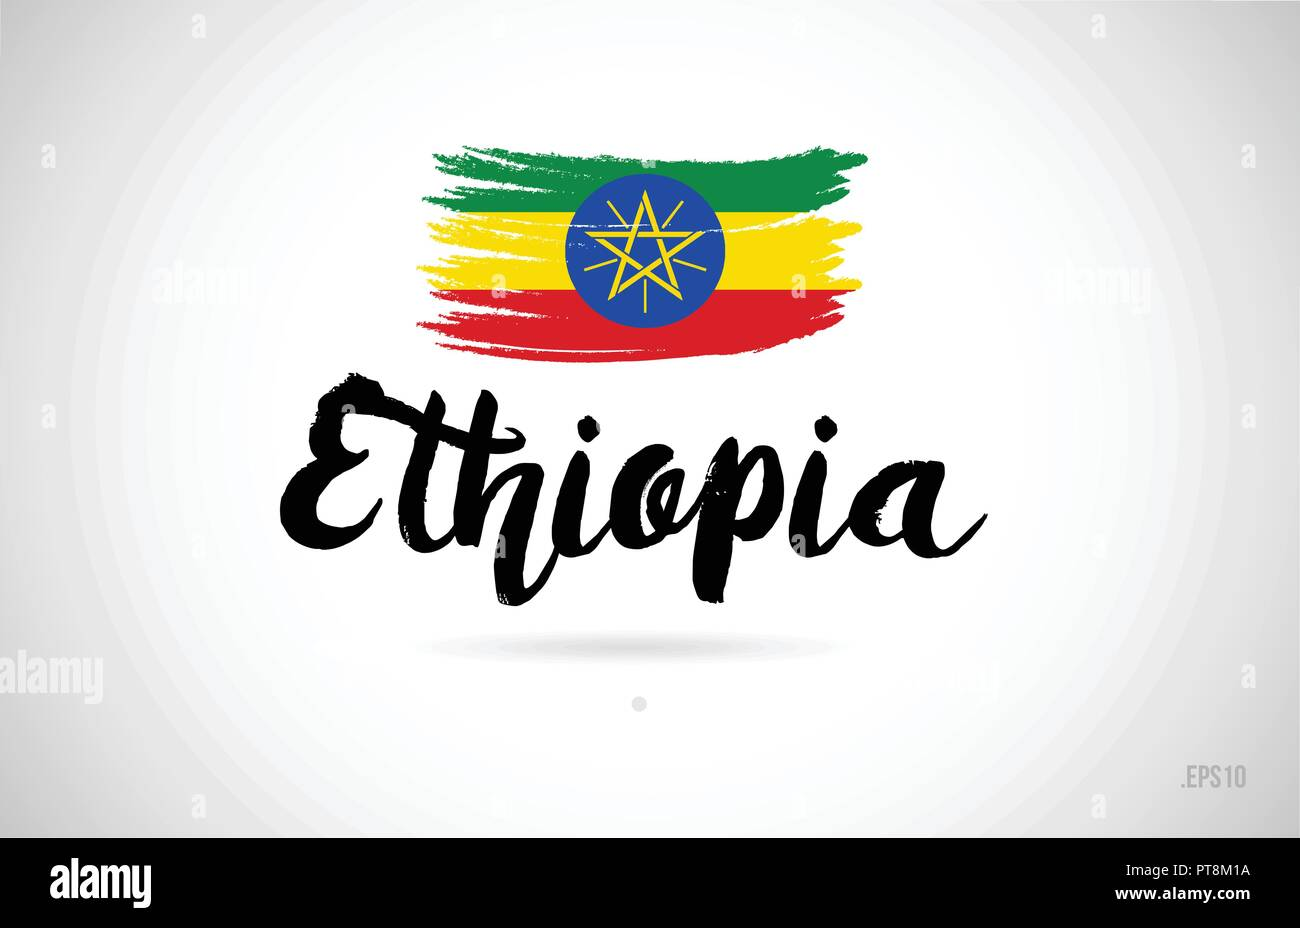 ethiopia country flag concept with grunge design suitable for a logo icon design - Stock Vector